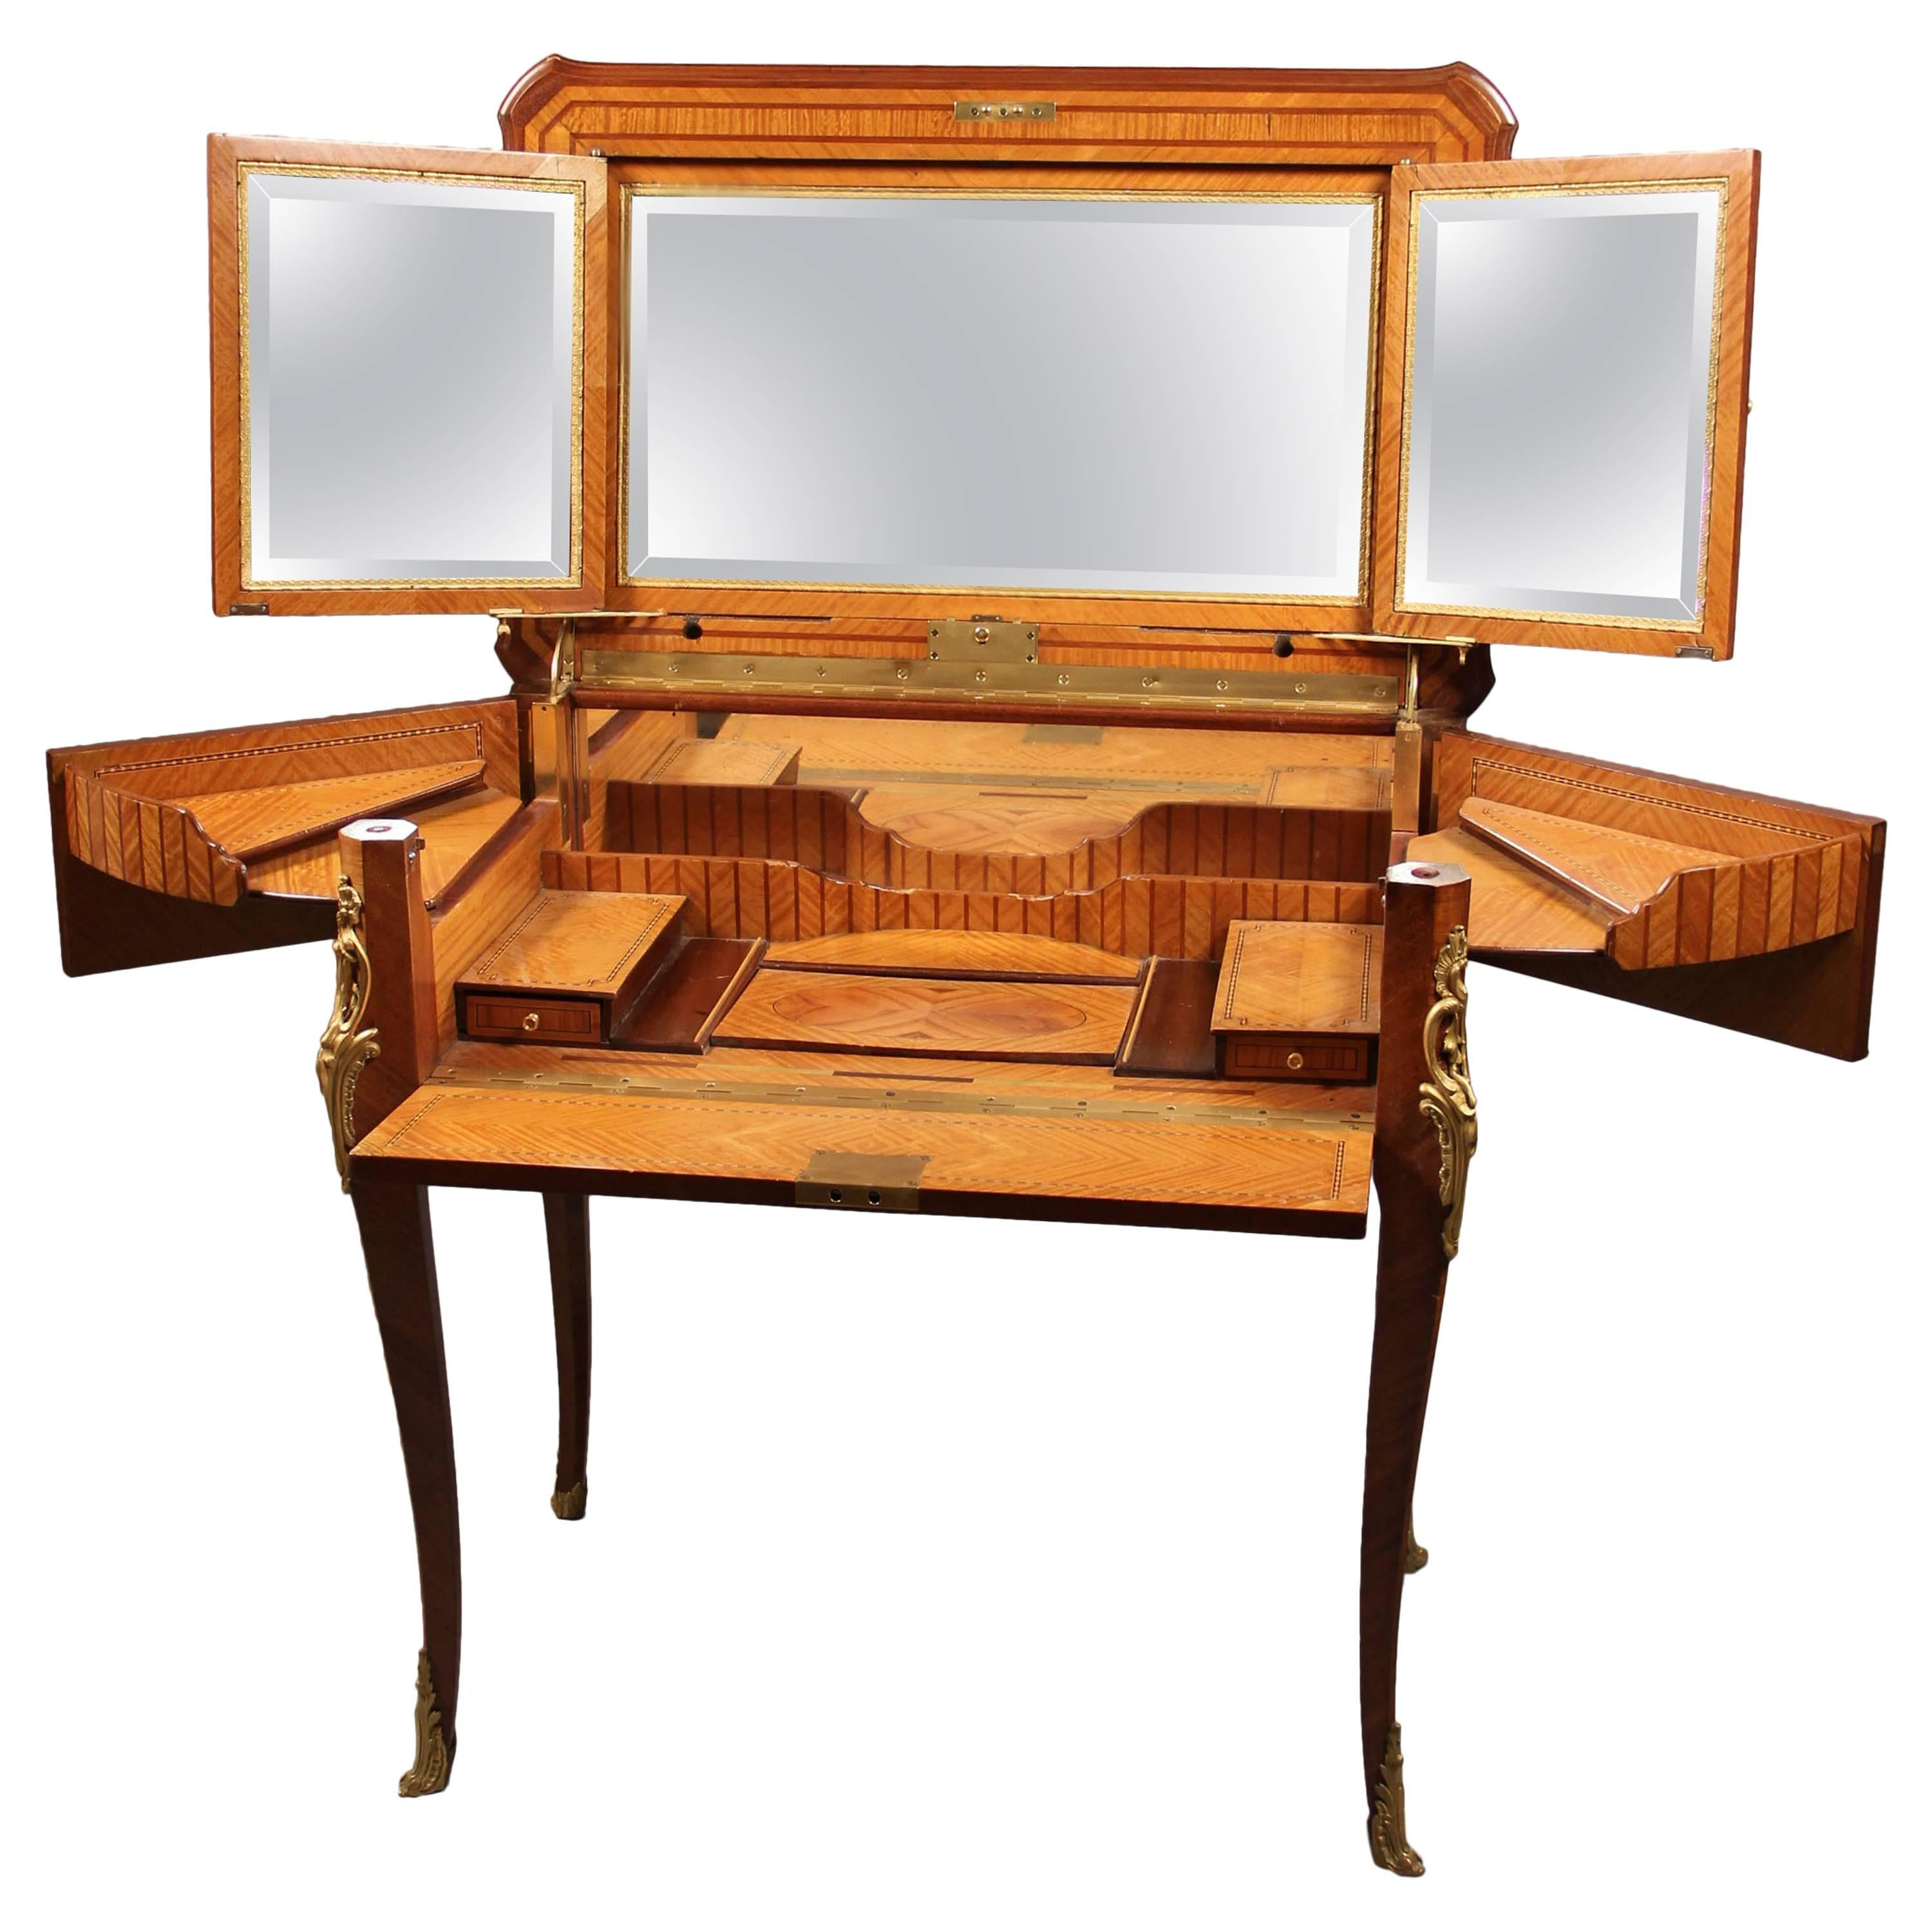 Rare Late 19th Century Dressing Gilt Bronze Mounted Dressing Table